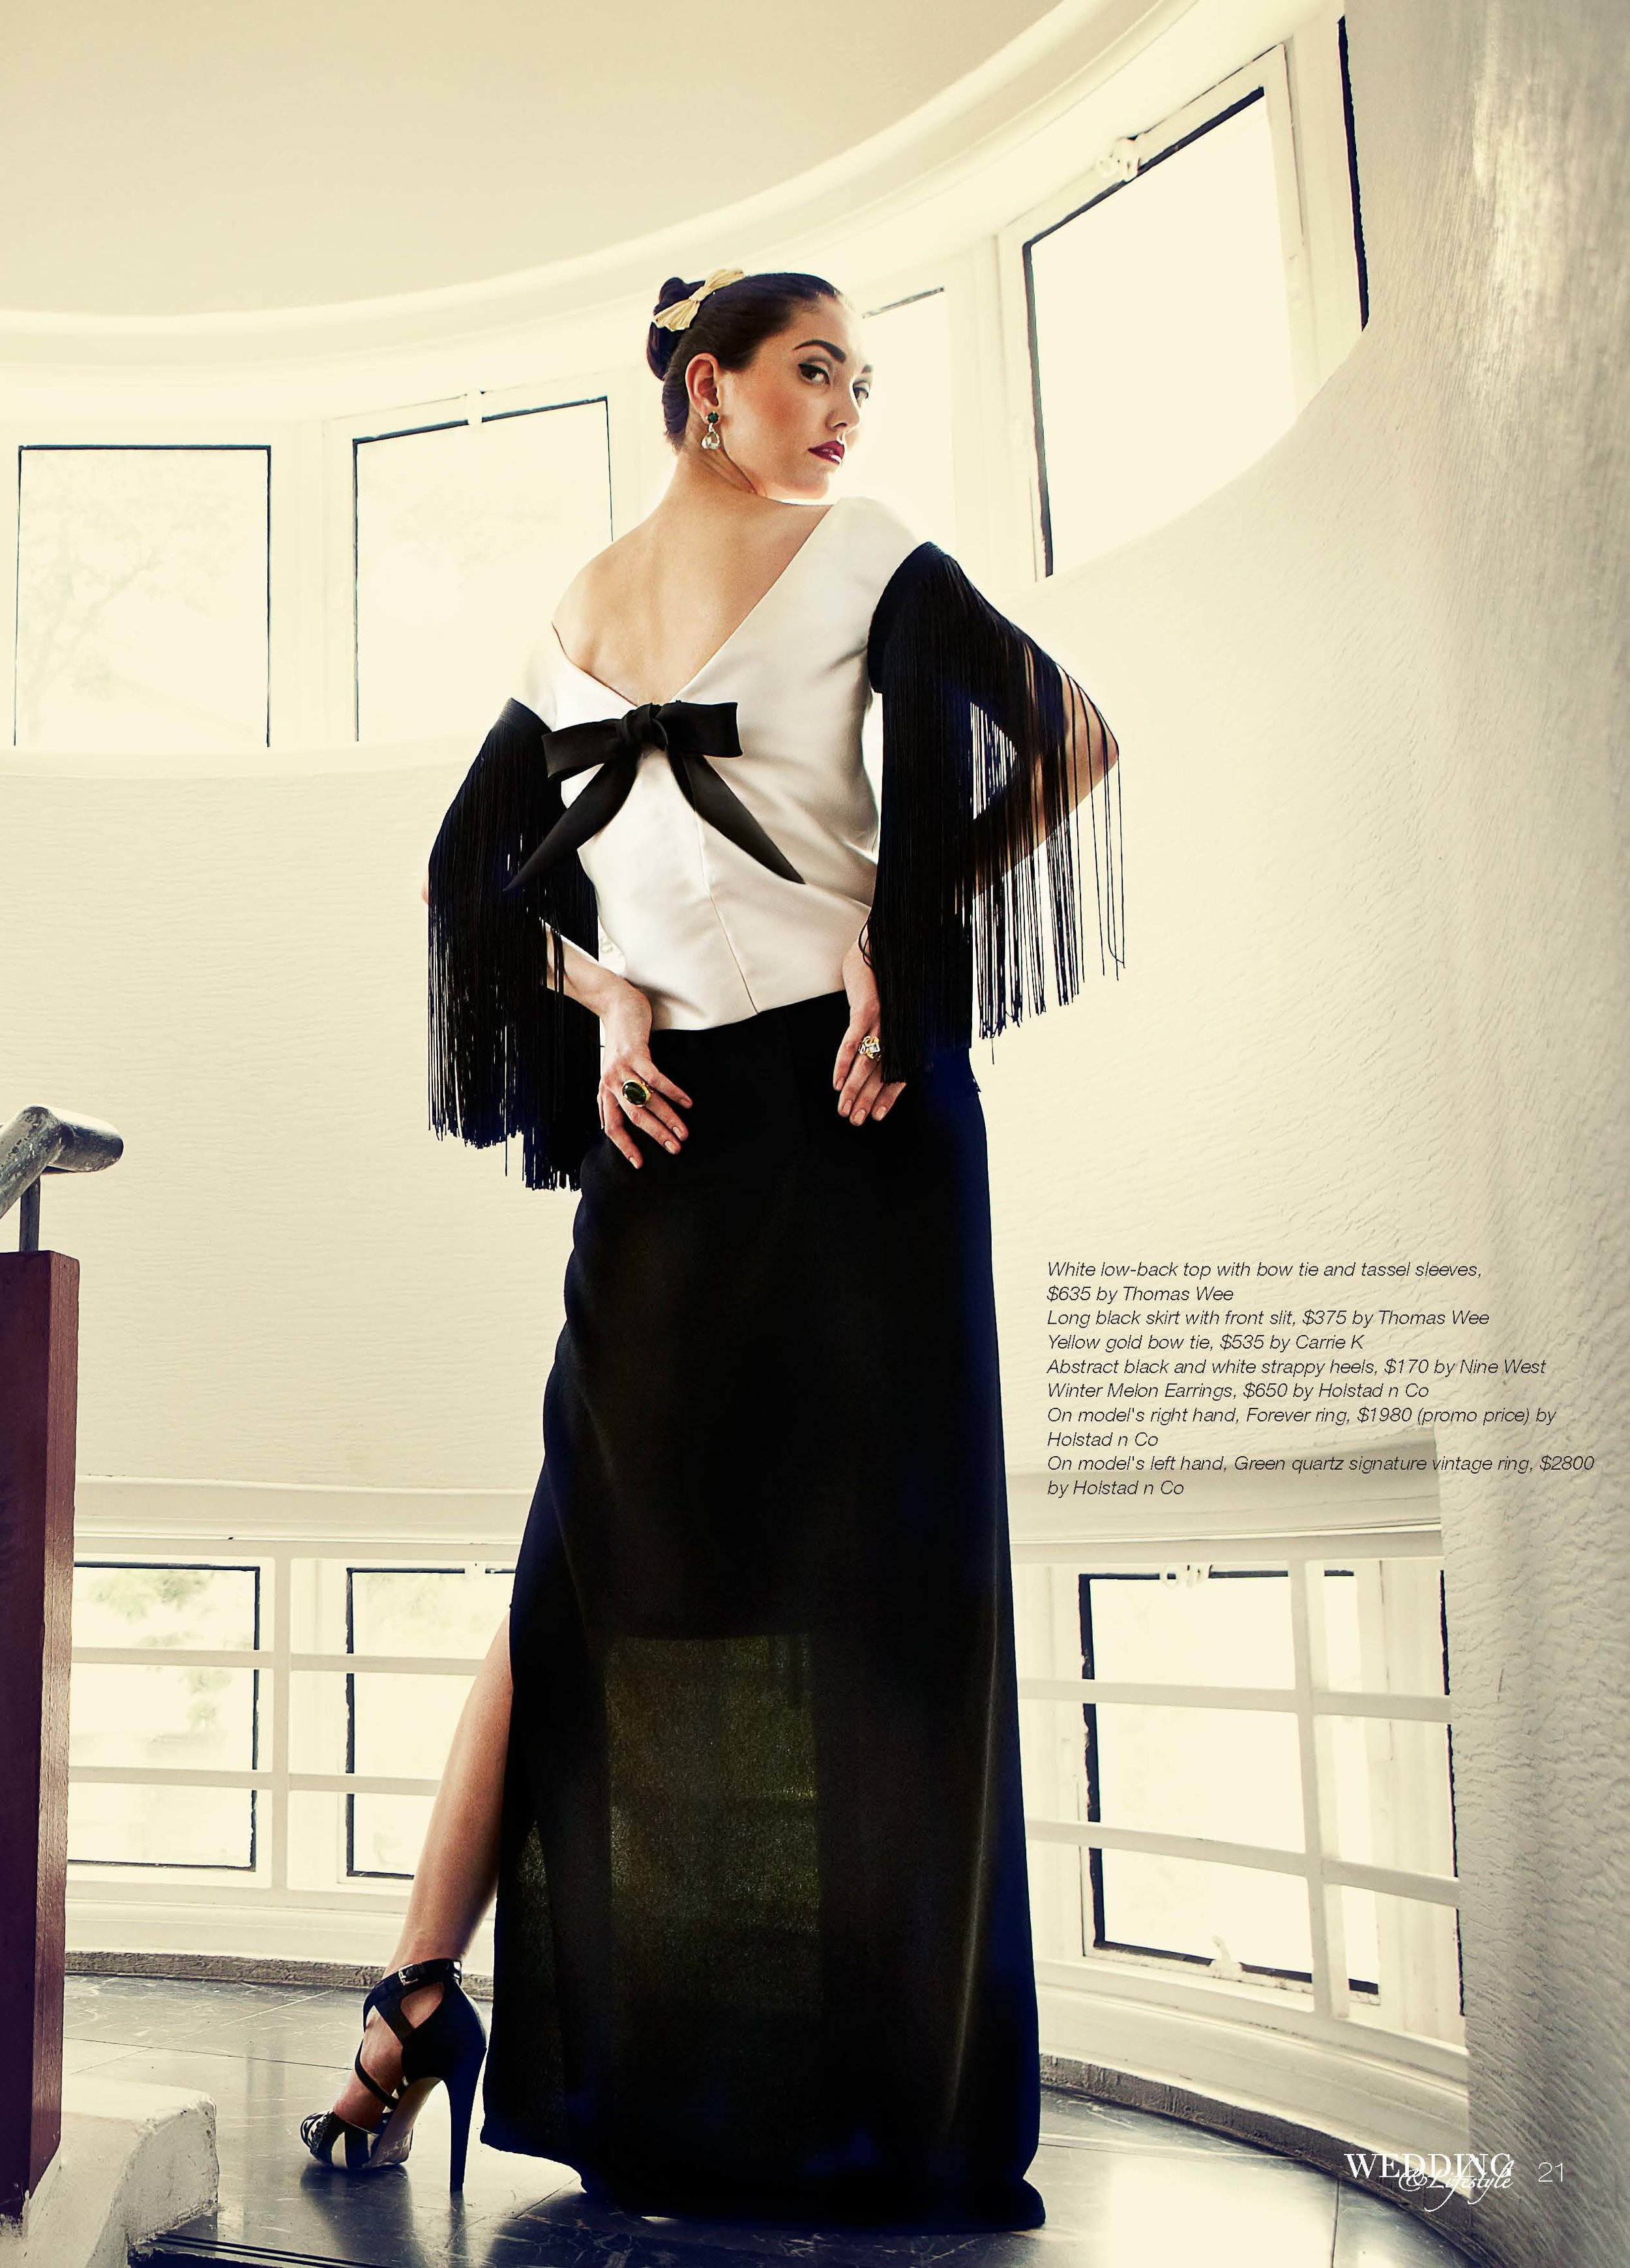 WLM9 Issue2-Fashion high res_Page_04.jpg